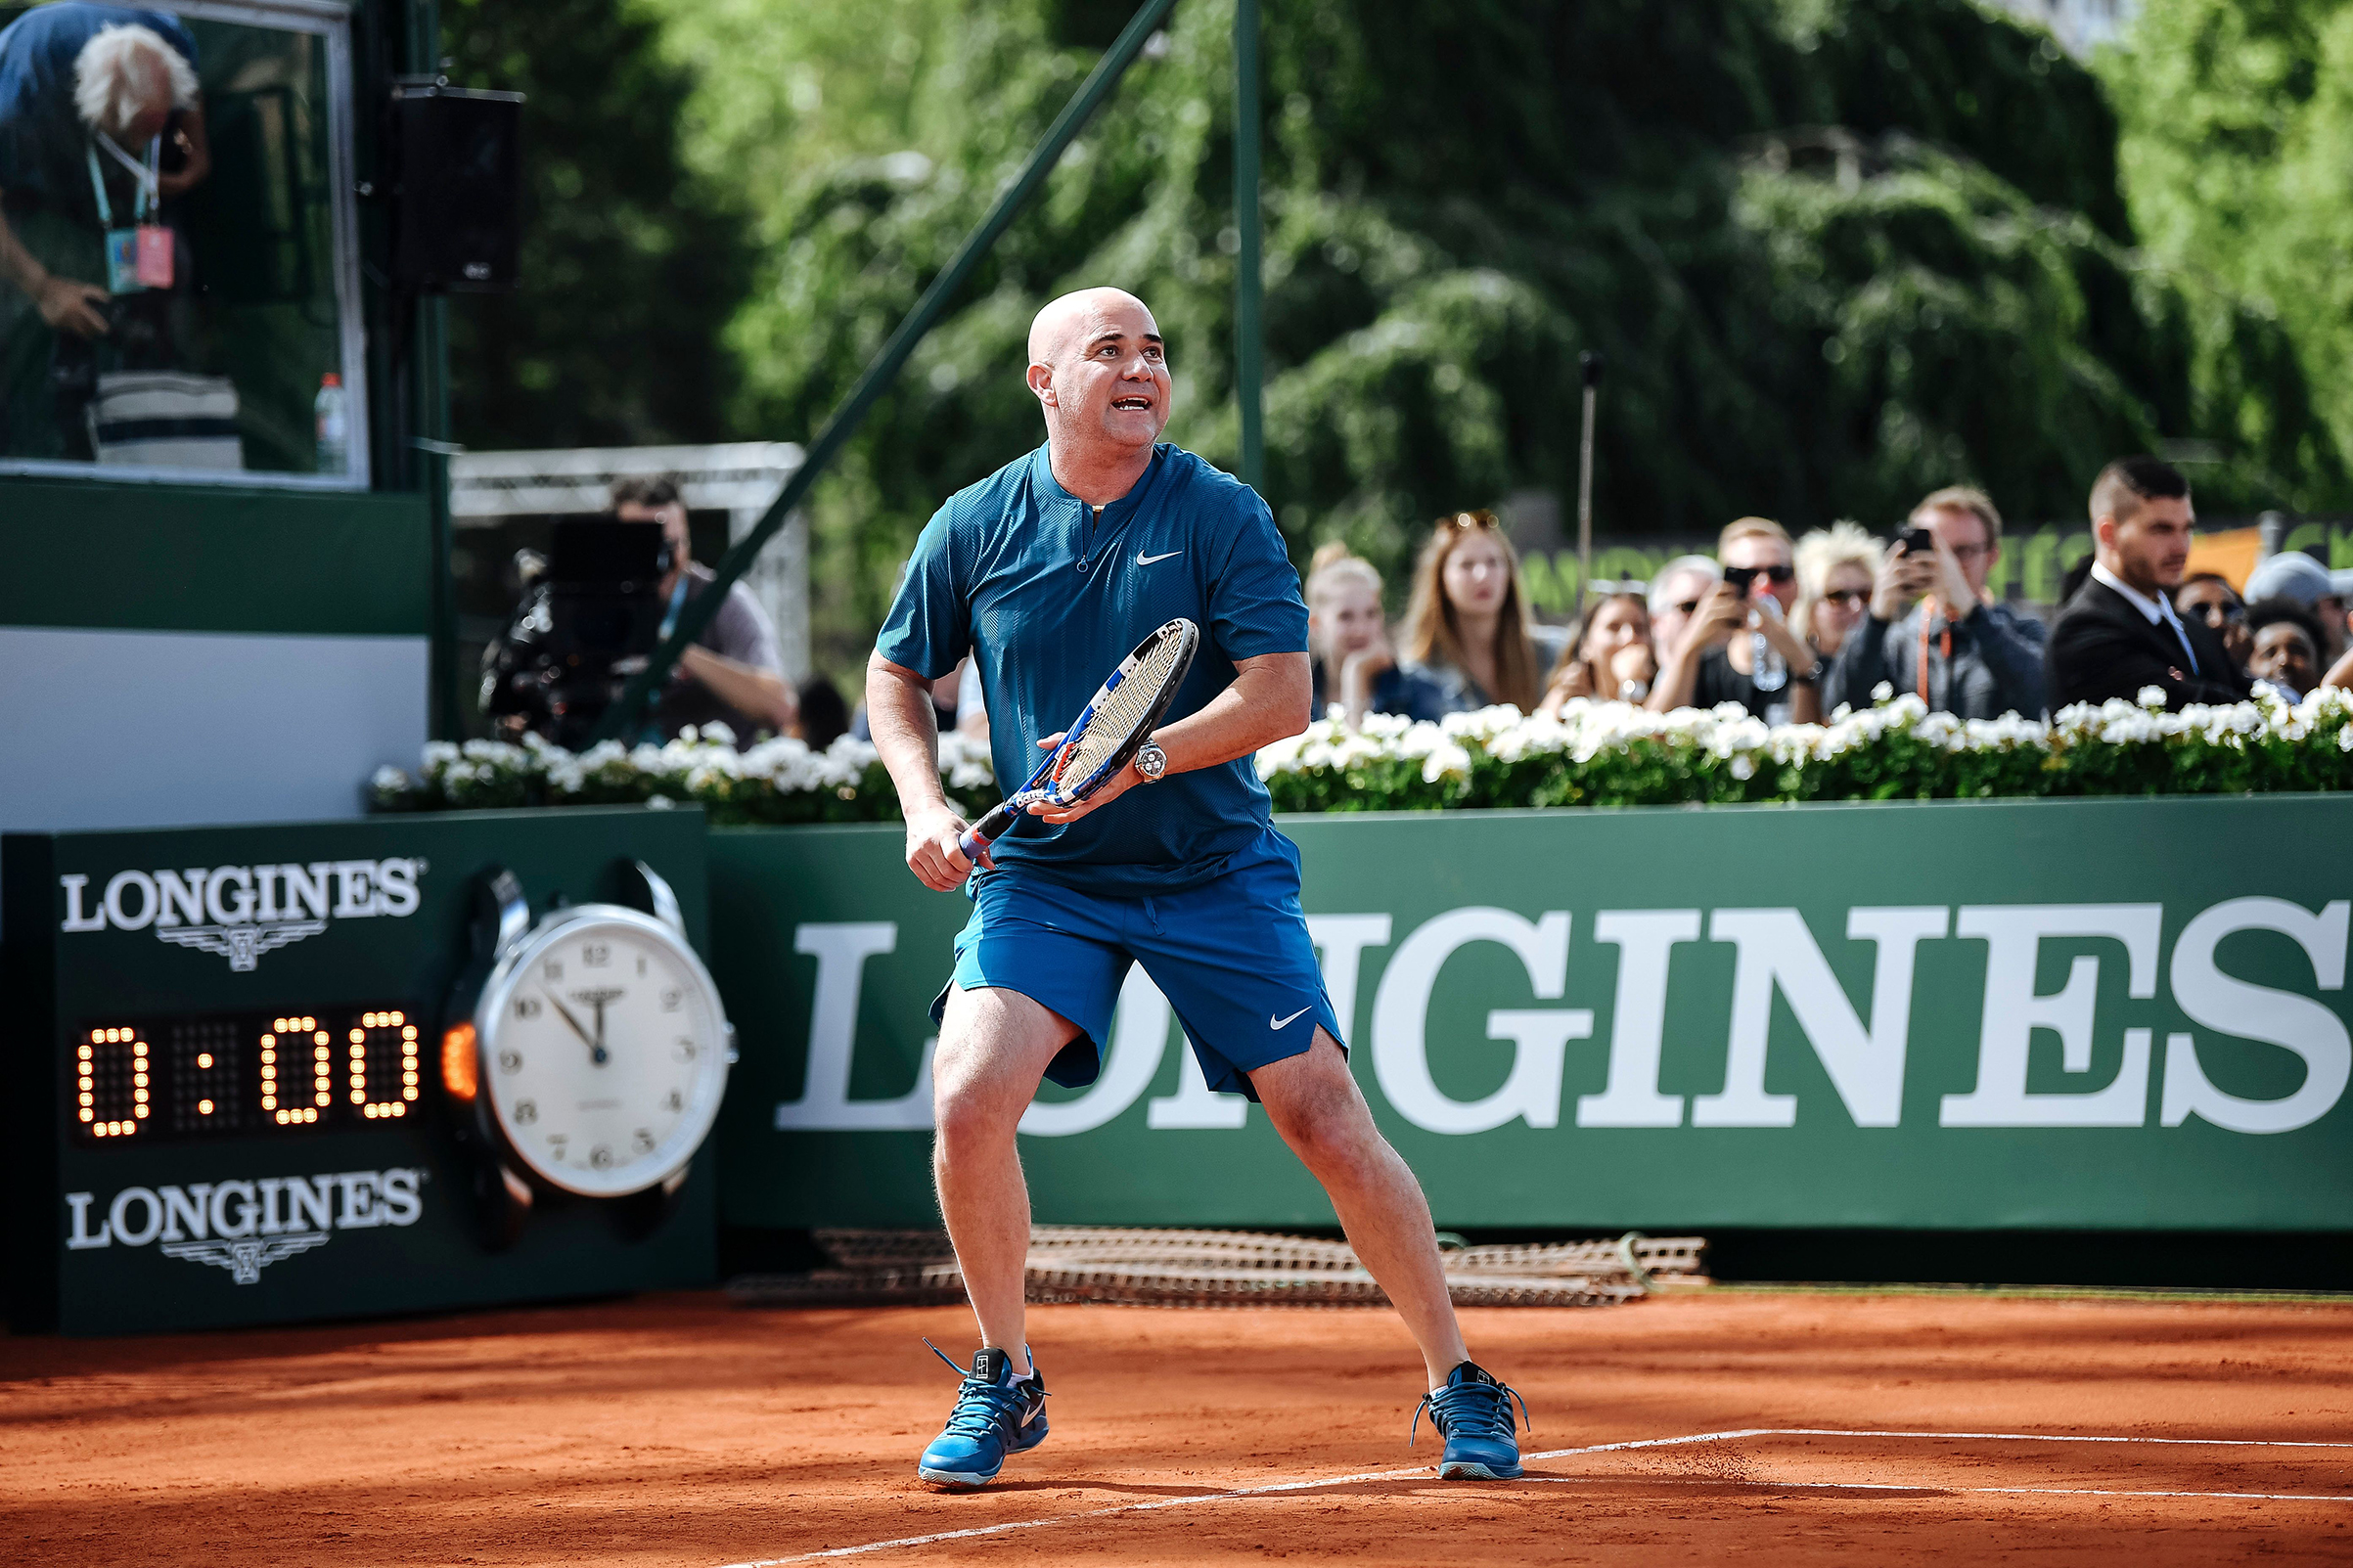 Andre Agassi at the Longines Future Tennis Aces in Paris, France on June 2, 2018.